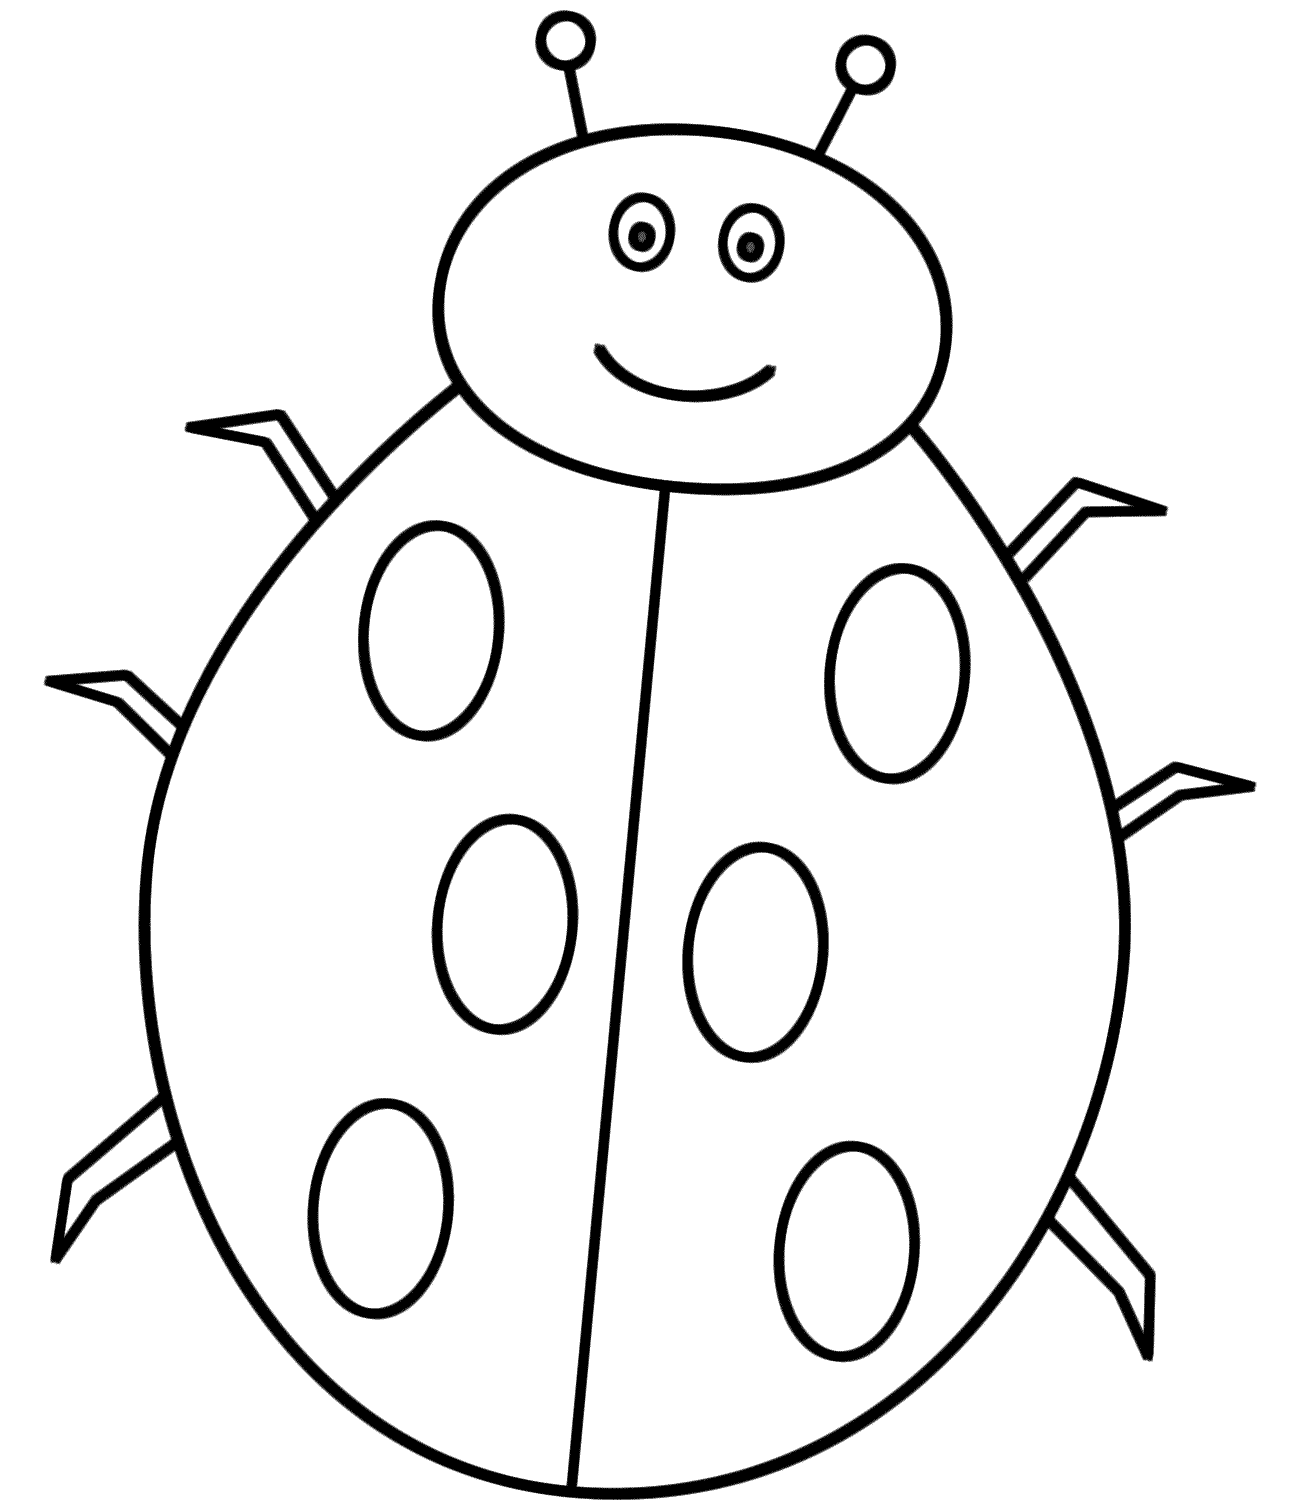 lady bug coloring pages printable bug coloring pages for kids cool2bkids lady pages bug coloring